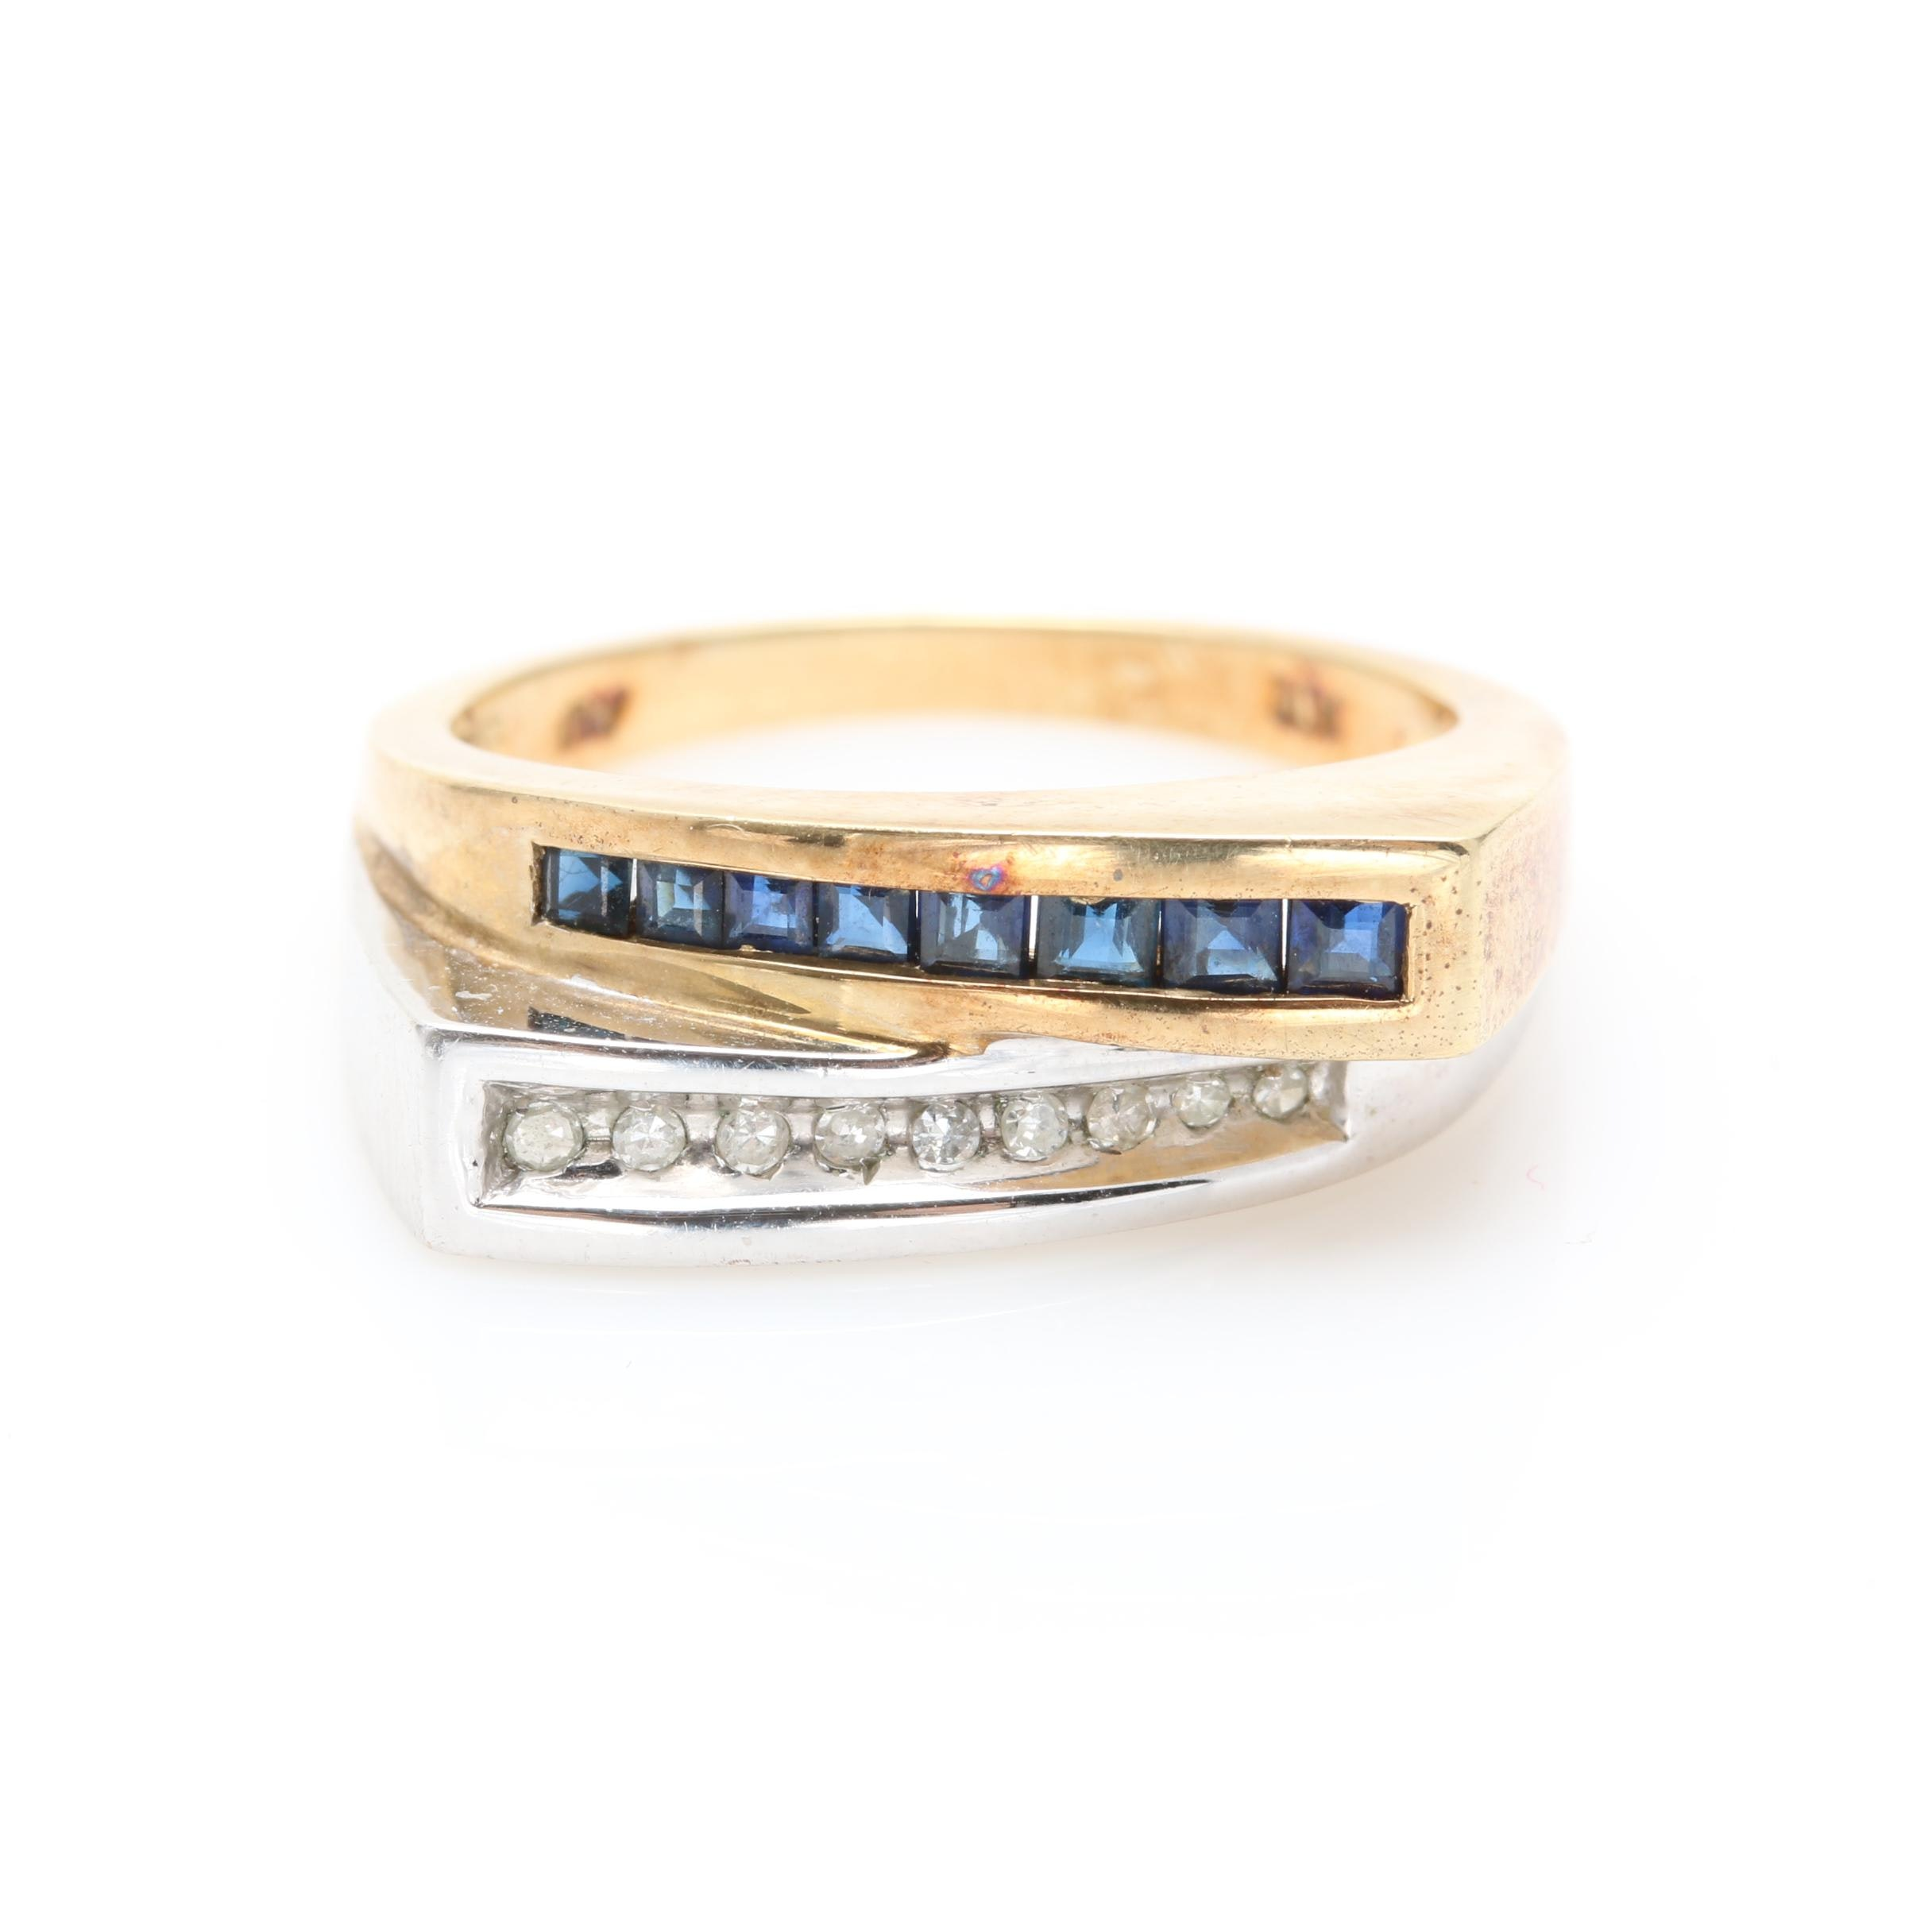 10K Yellow and White Gold Sapphire and Diamond Ring